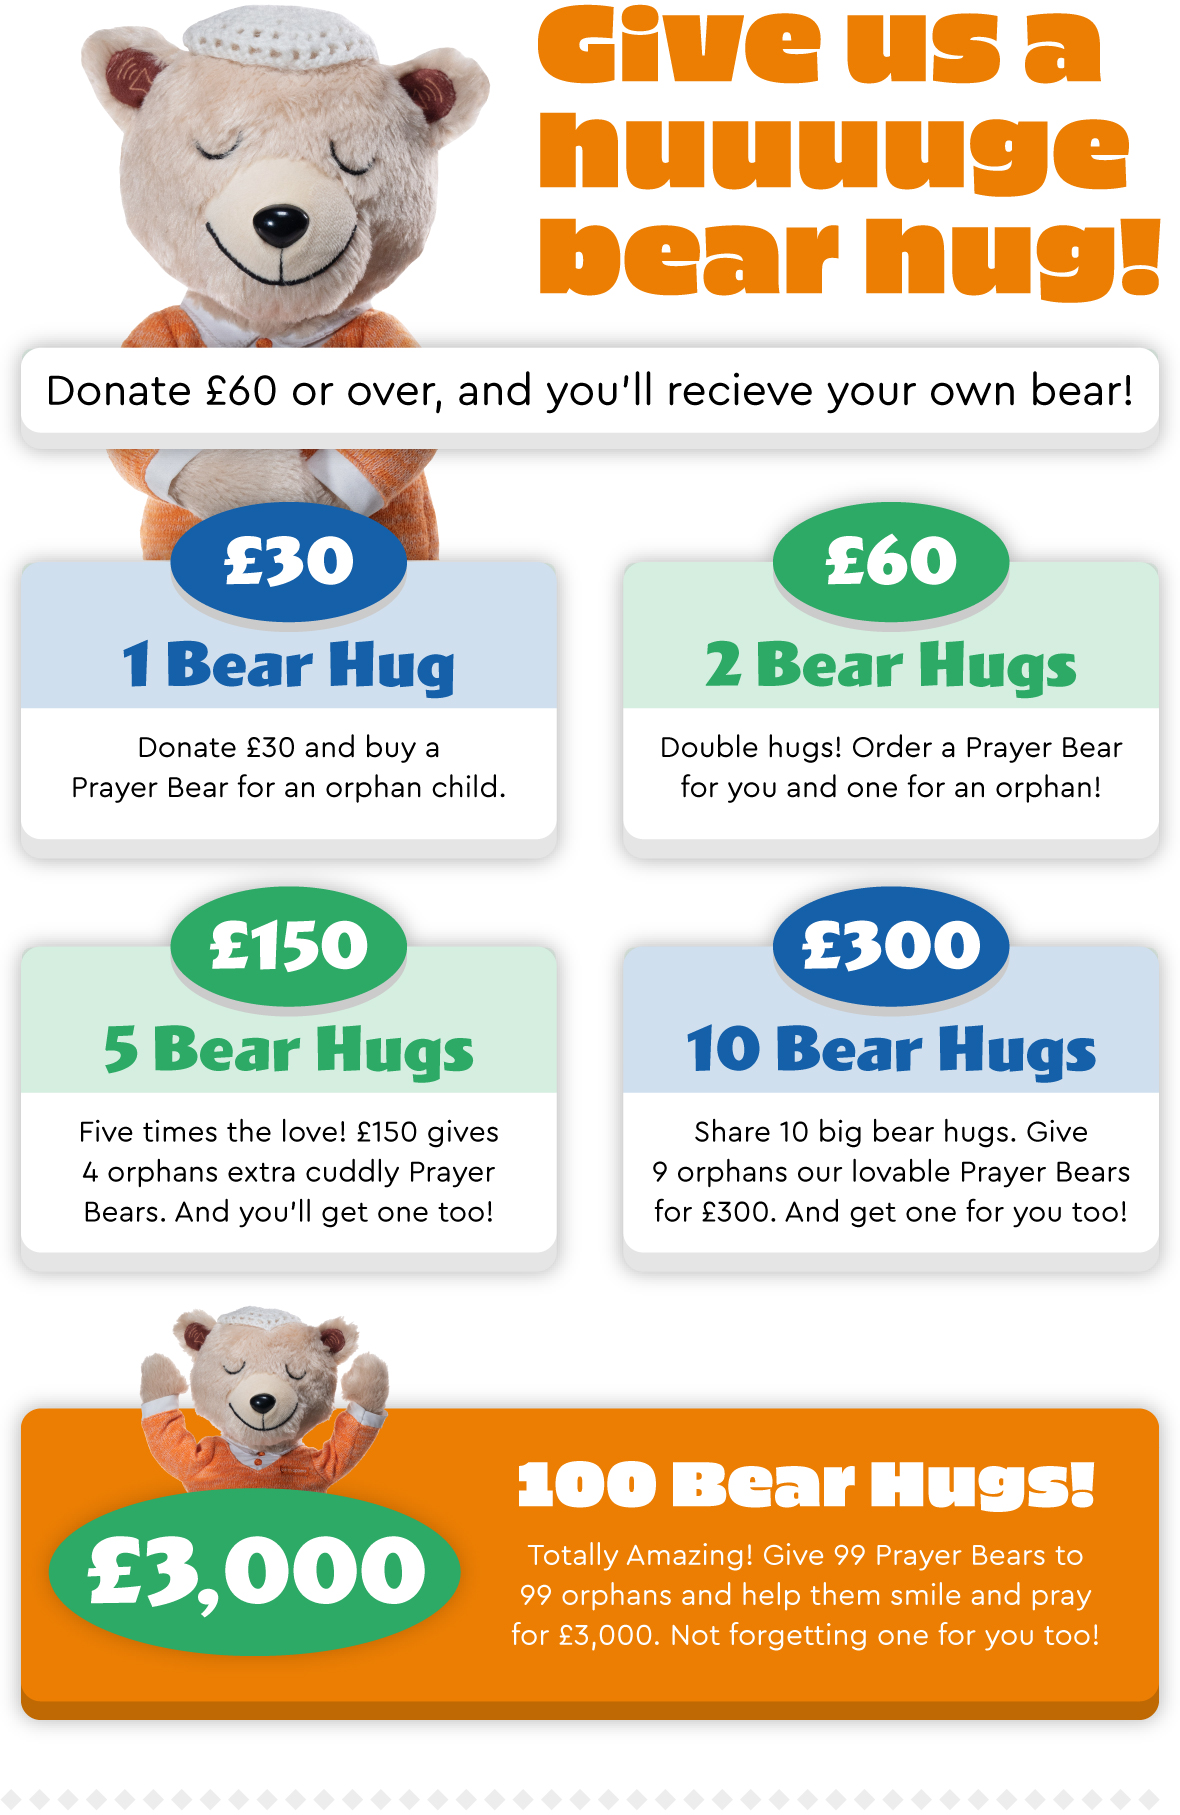 Projects | Penny The Prayer Bear! | LaunchGood